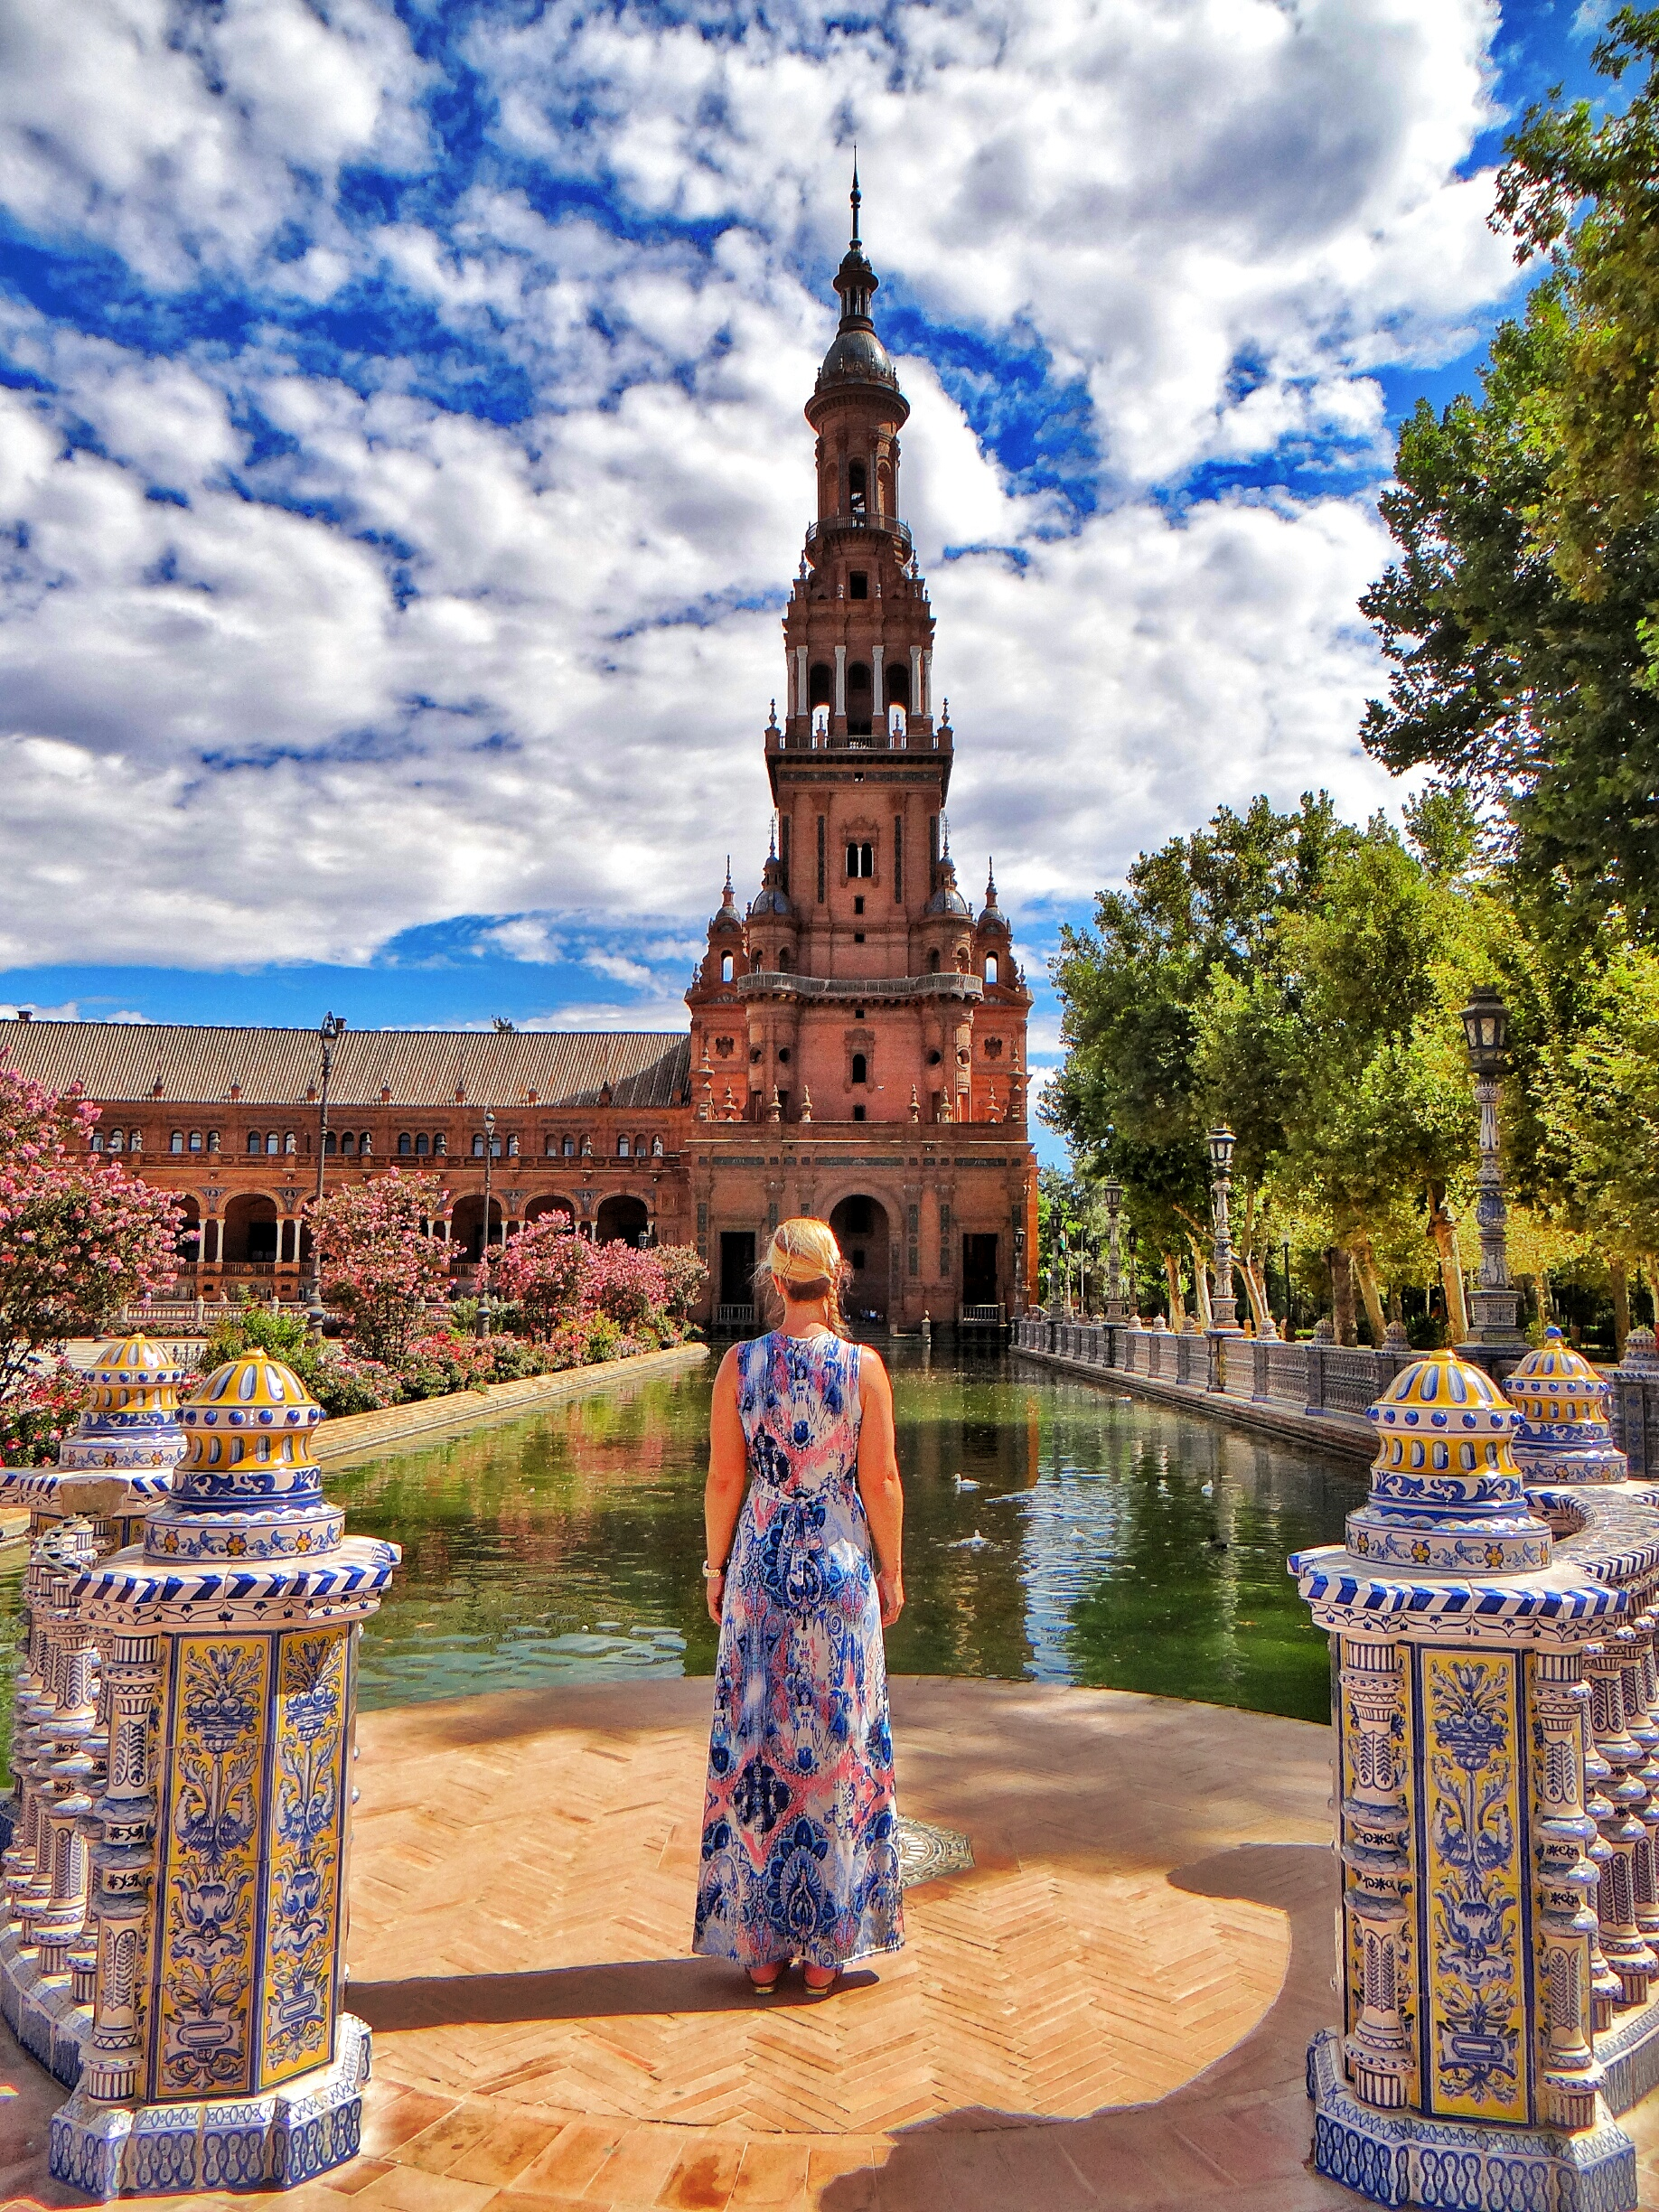 One day in Sevilla: one of the most beautiful cities in ...